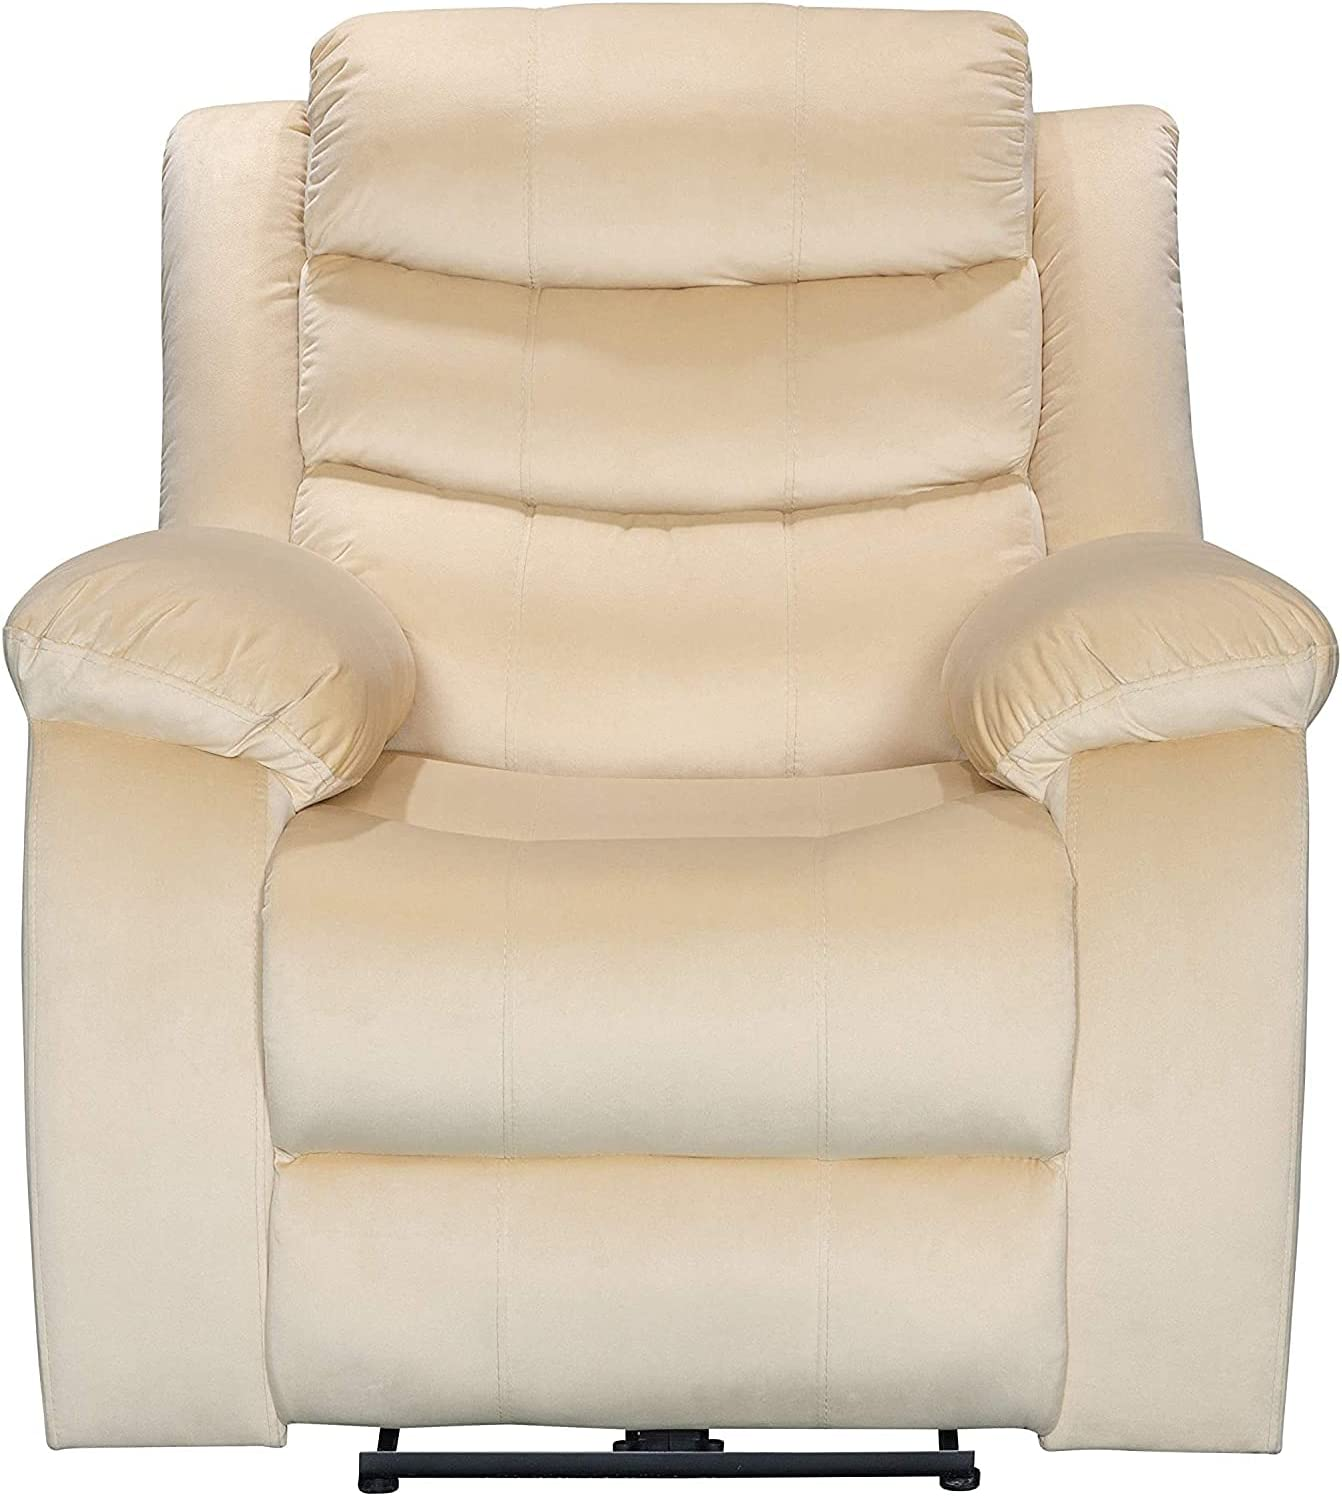 ICE ARMOR 99LCH8005-BGE Power USB Port Electric Pillow Top Arms Bedroom and Living Room Recliner Sofa Chair, Beige